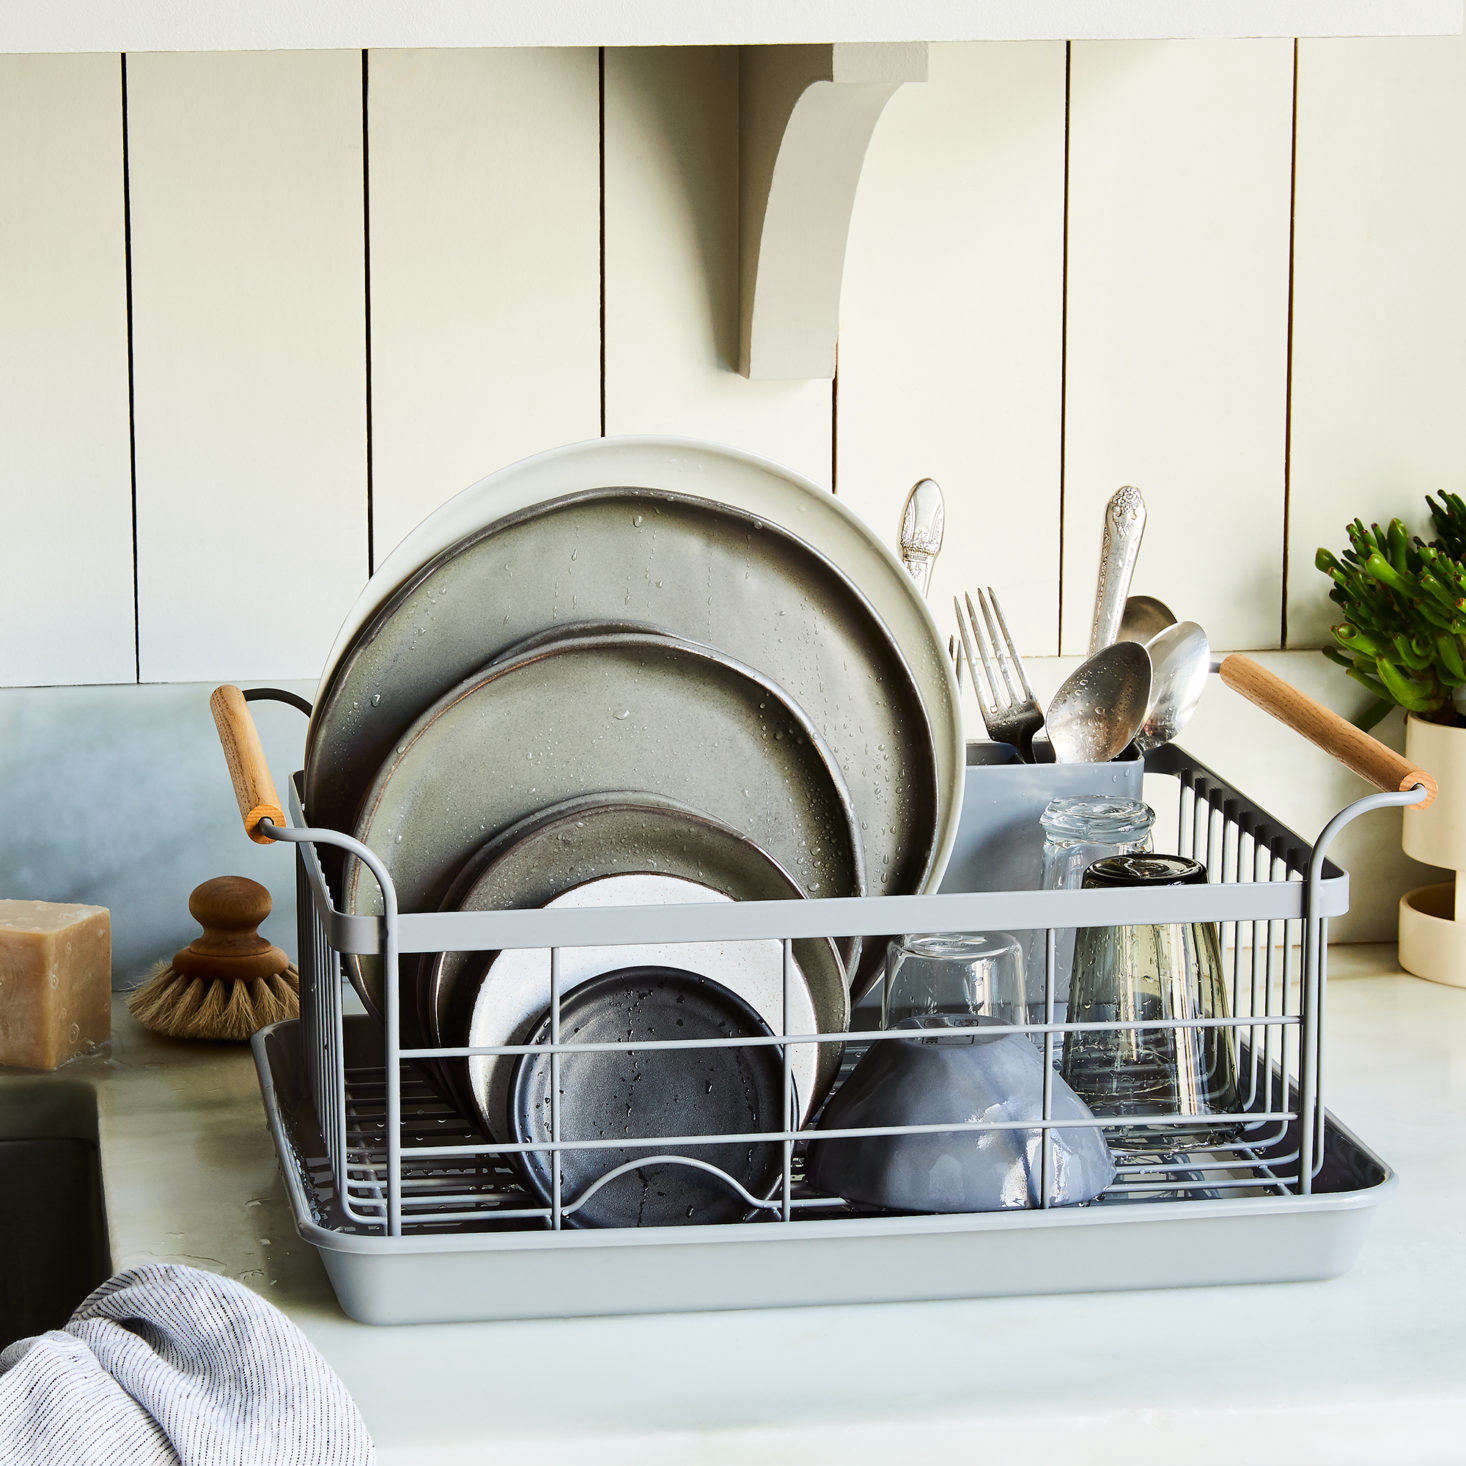 A dish rack so good it had a 1,500 person wait list? We were shocked too, but it's true. Read about what makes it so great inEveryone Wants This 'It' Dish Rack (It Even Had a Wait List!). Photograph courtesy of Food52.